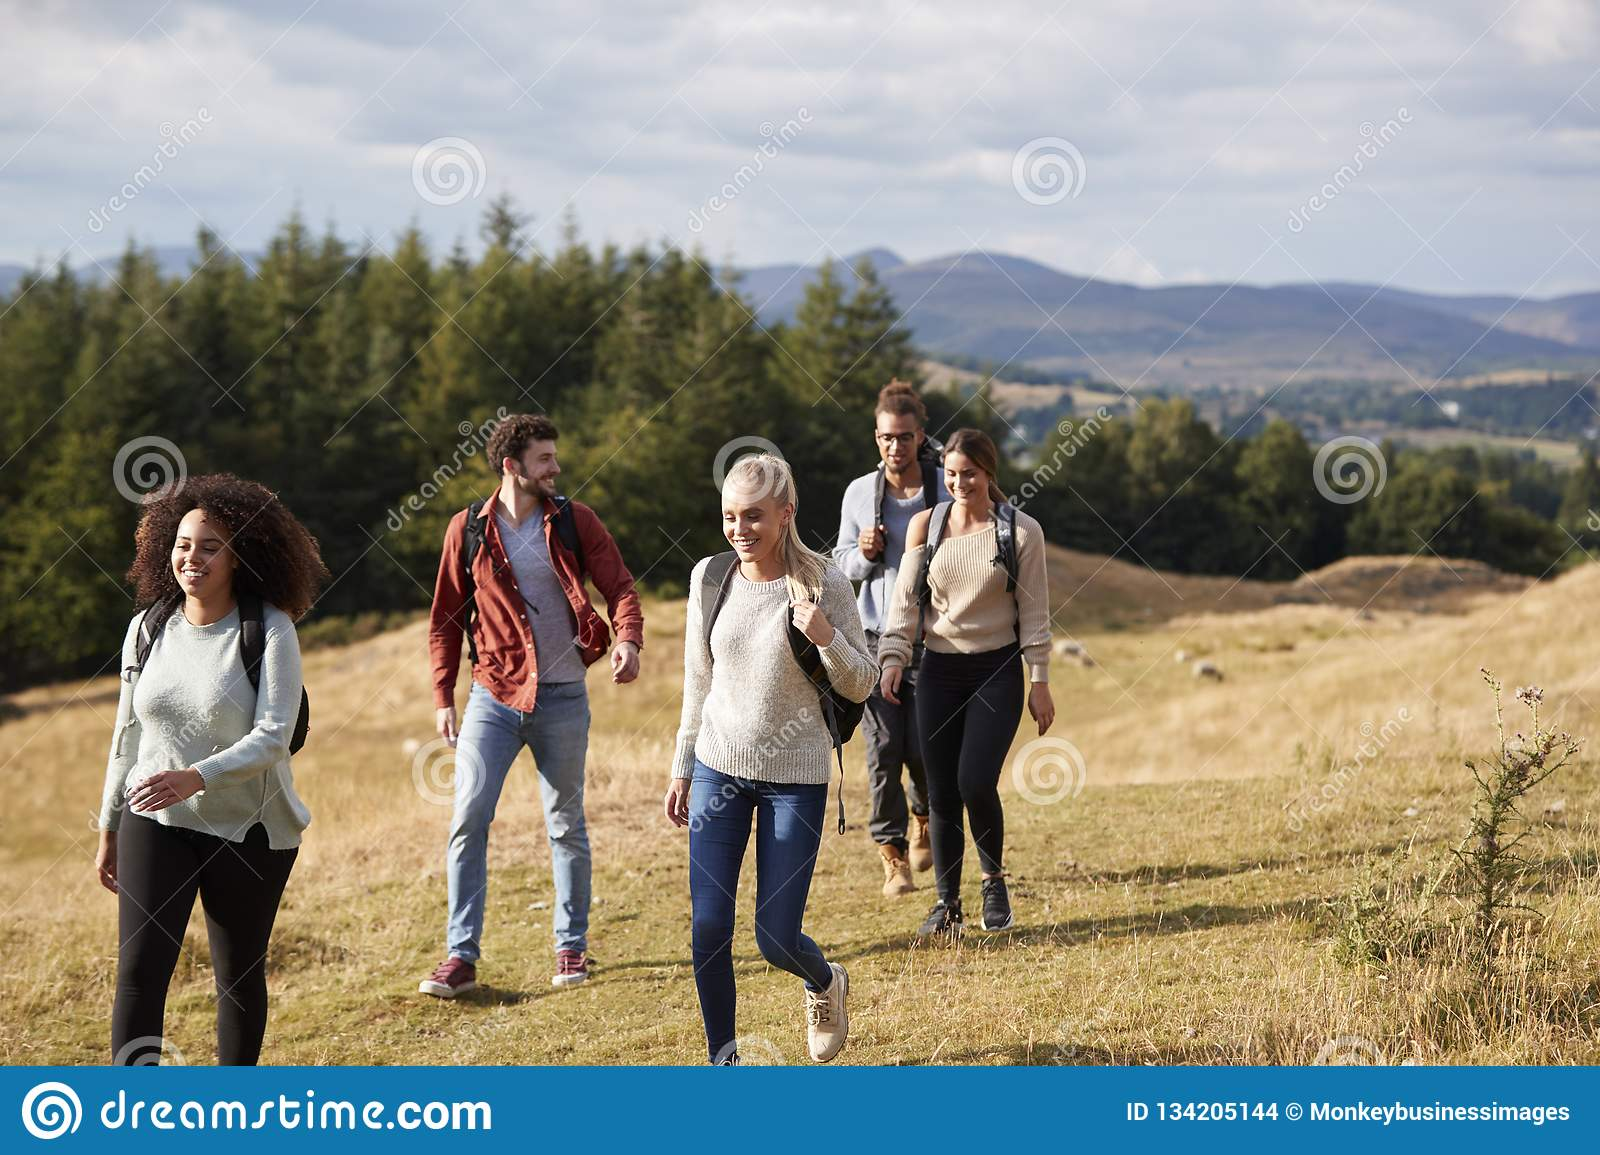 Multi ethnic group of five happy young adult friends talking as they walk on a rural path during a mountain hike